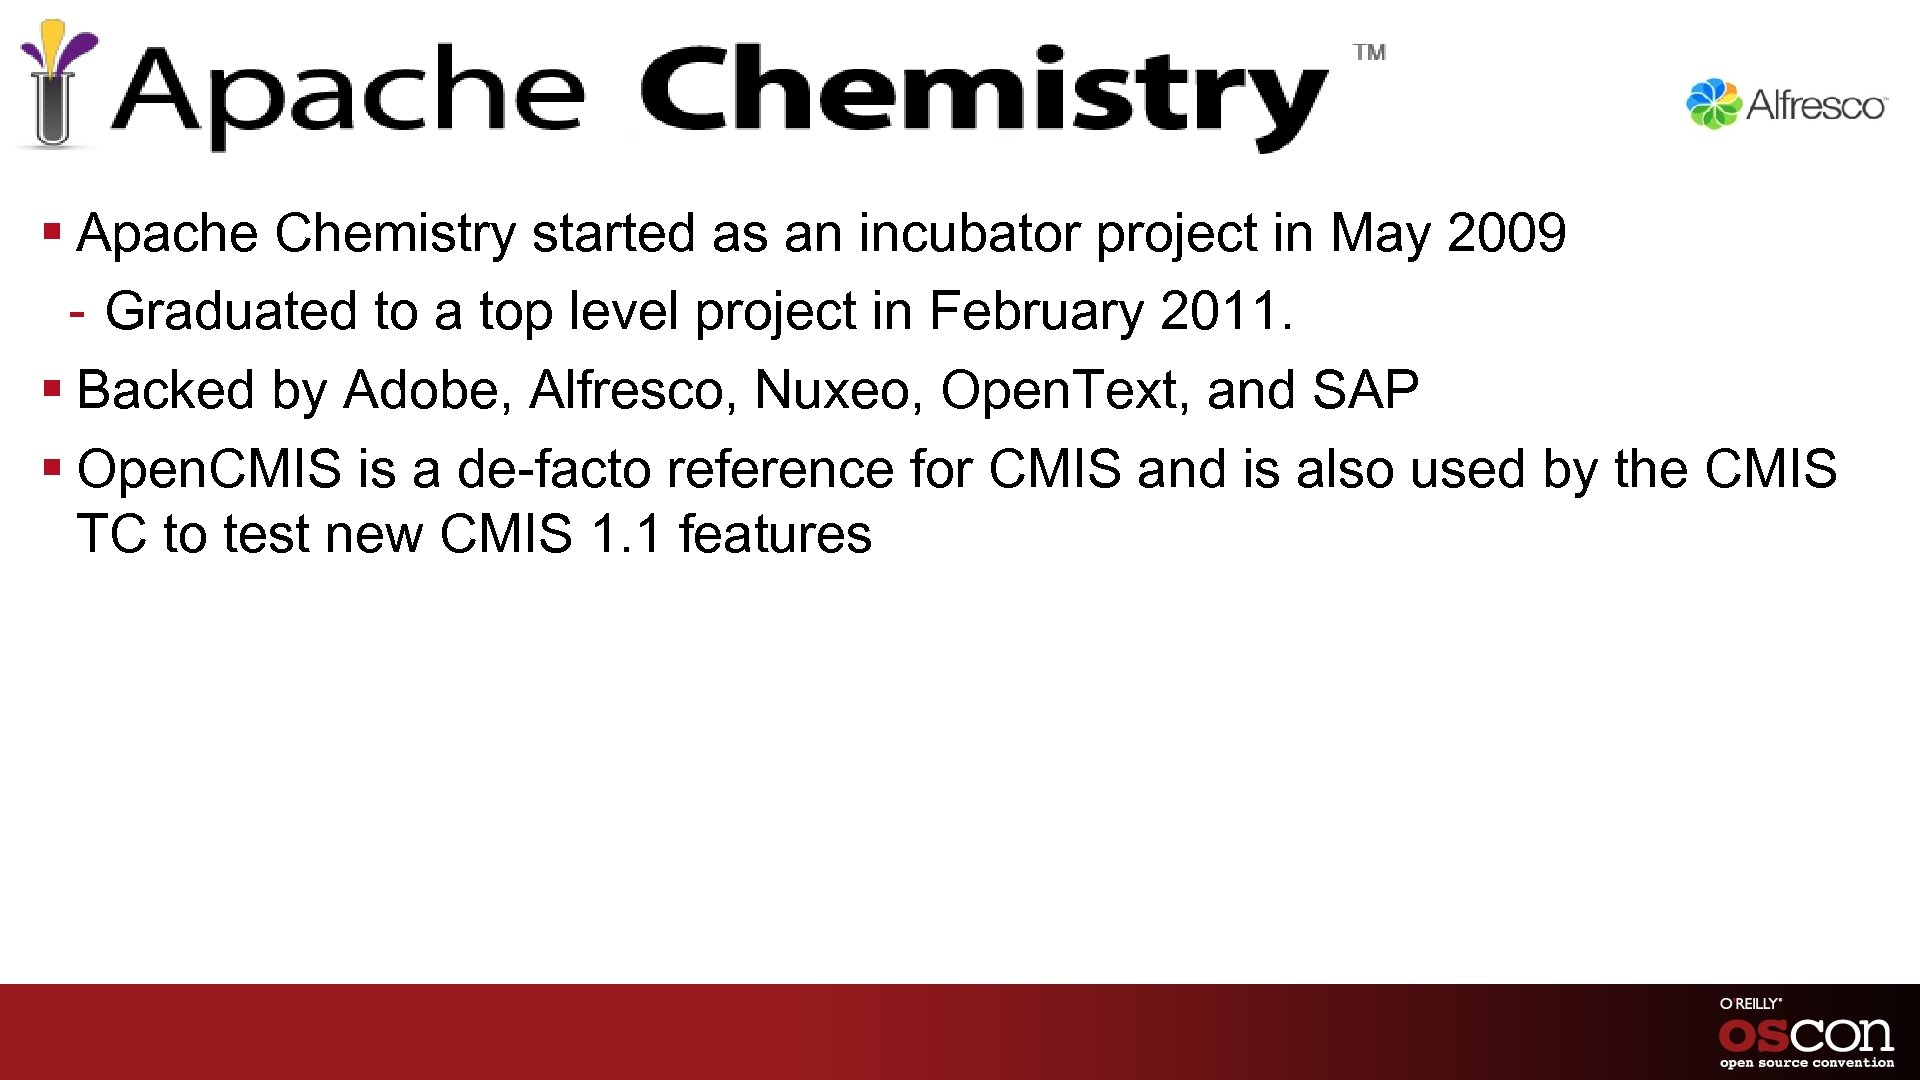 § Apache Chemistry started as an incubator project in May 2009 - Graduated to